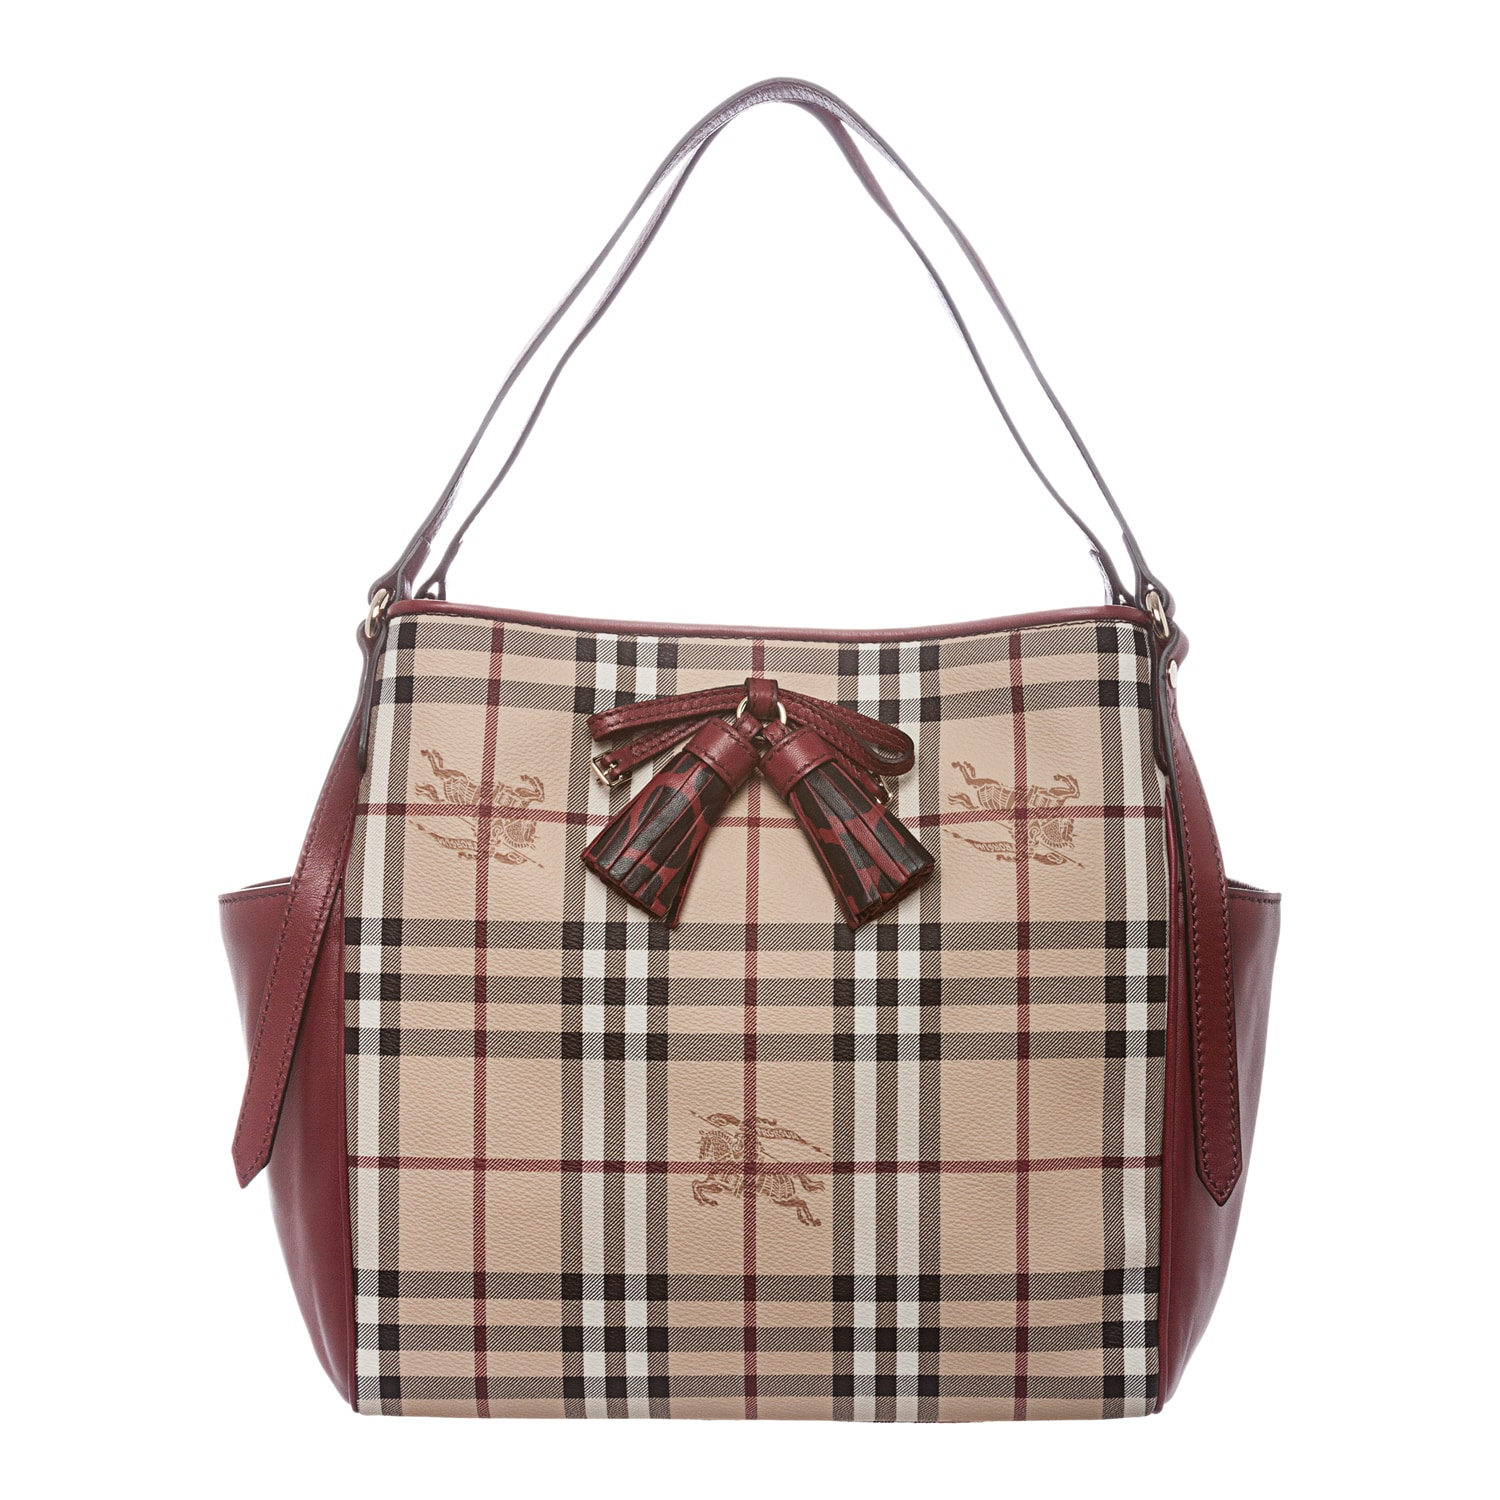 9ffd4d6a5318 Shop Burberry Small Beige  Red Tassel-bow Haymarket Check Tote - Free  Shipping Today - Overstock.com - 8553810